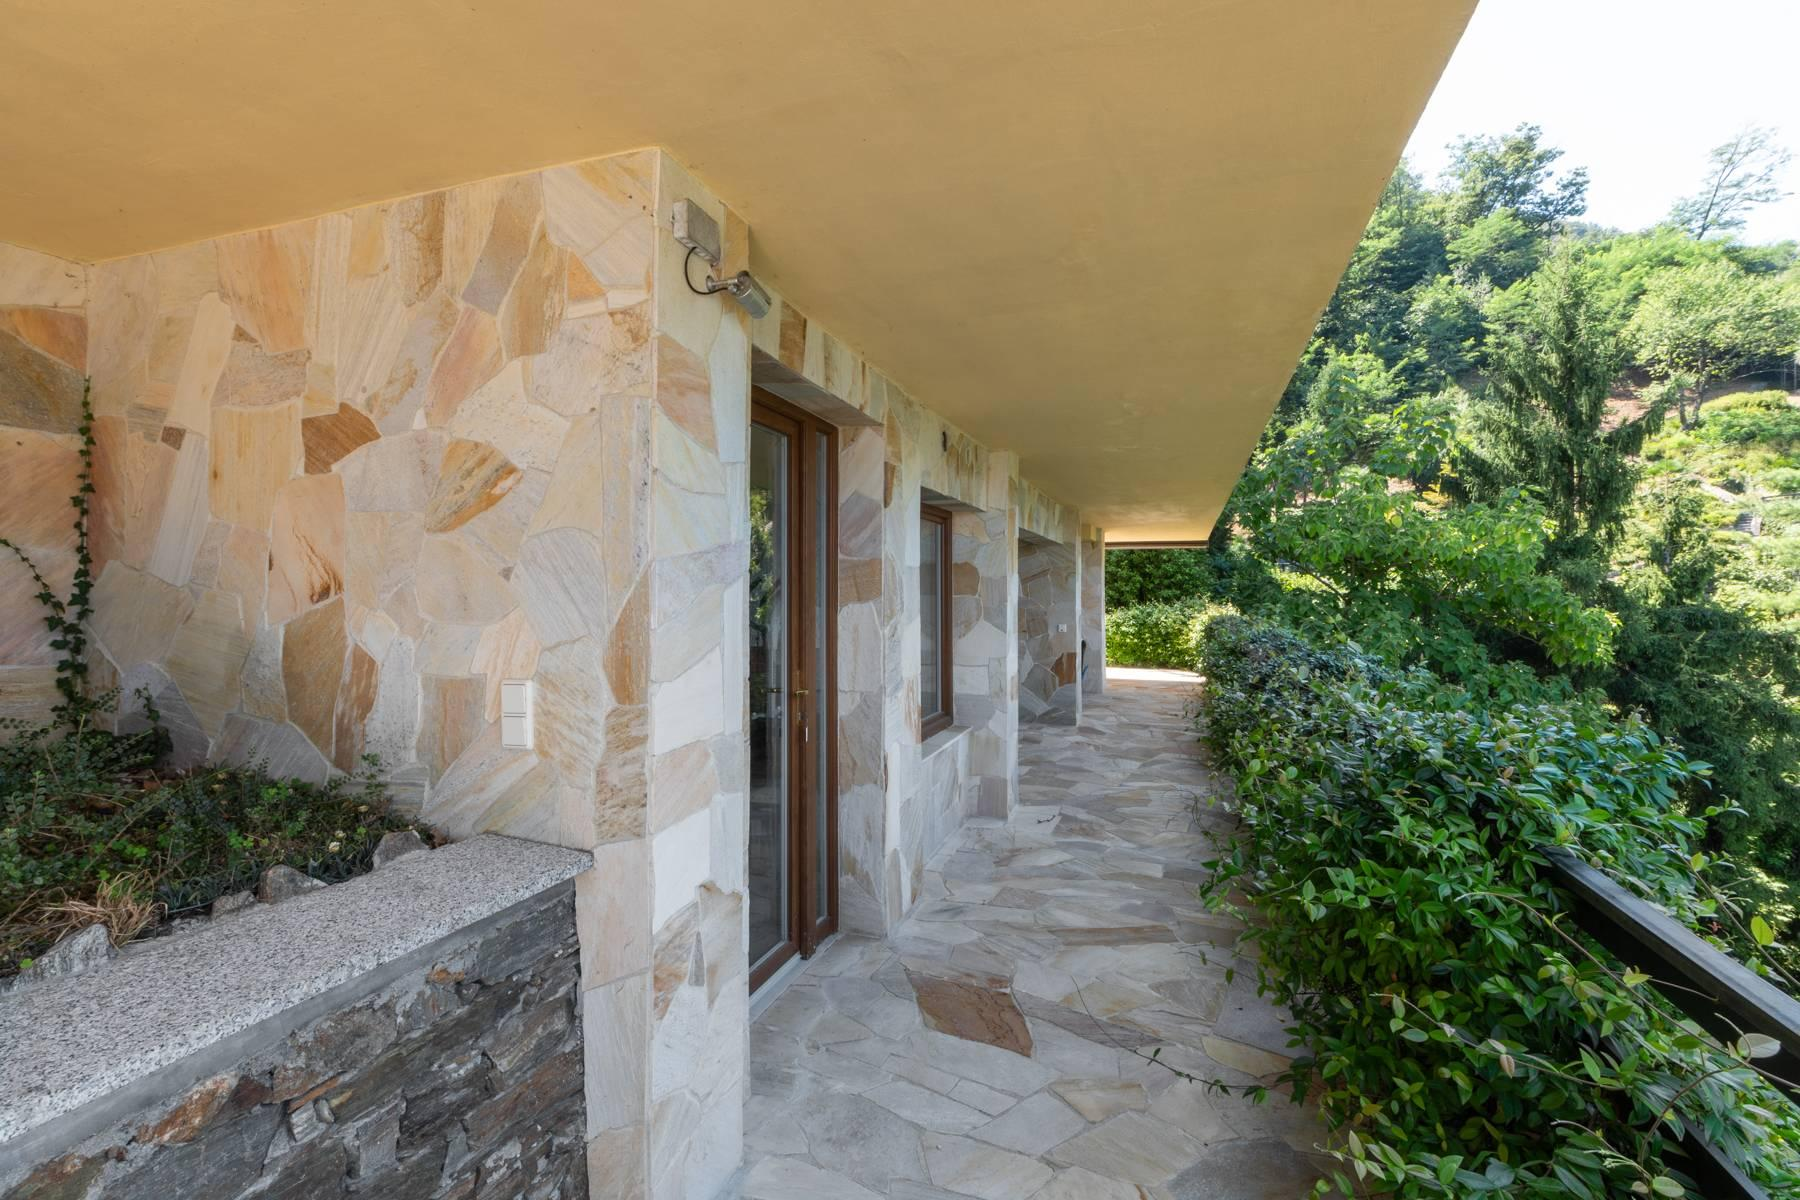 1960s style villa with breathtaking view of the Borromean Islands - 27